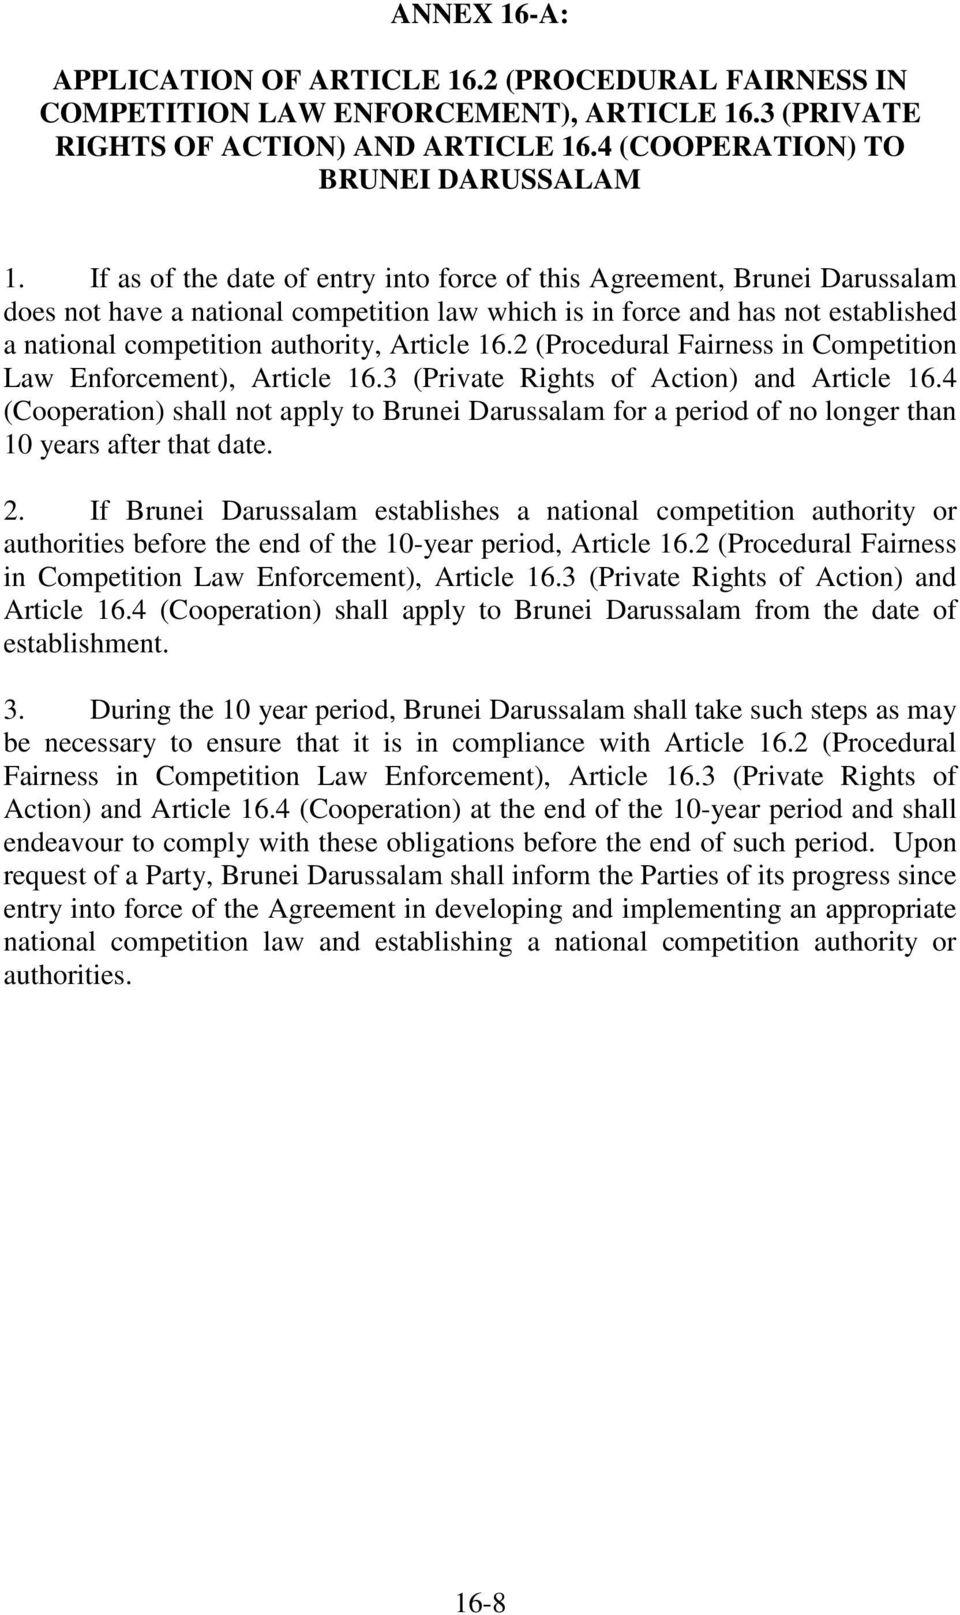 16.2 (Procedural Fairness in Competition Law Enforcement), Article 16.3 (Private Rights of Action) and Article 16.